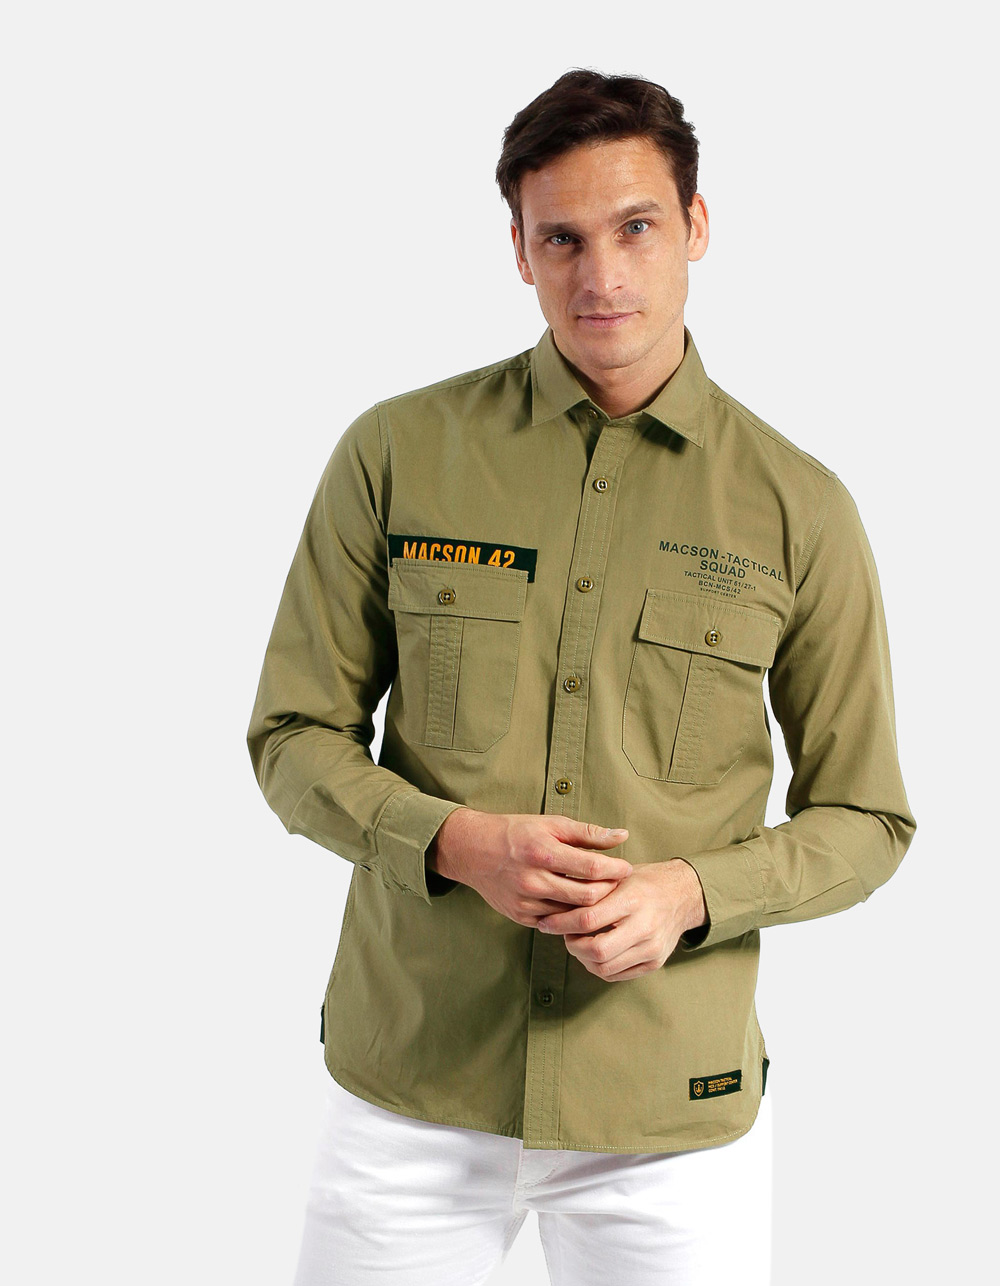 Shirt with placket pocket